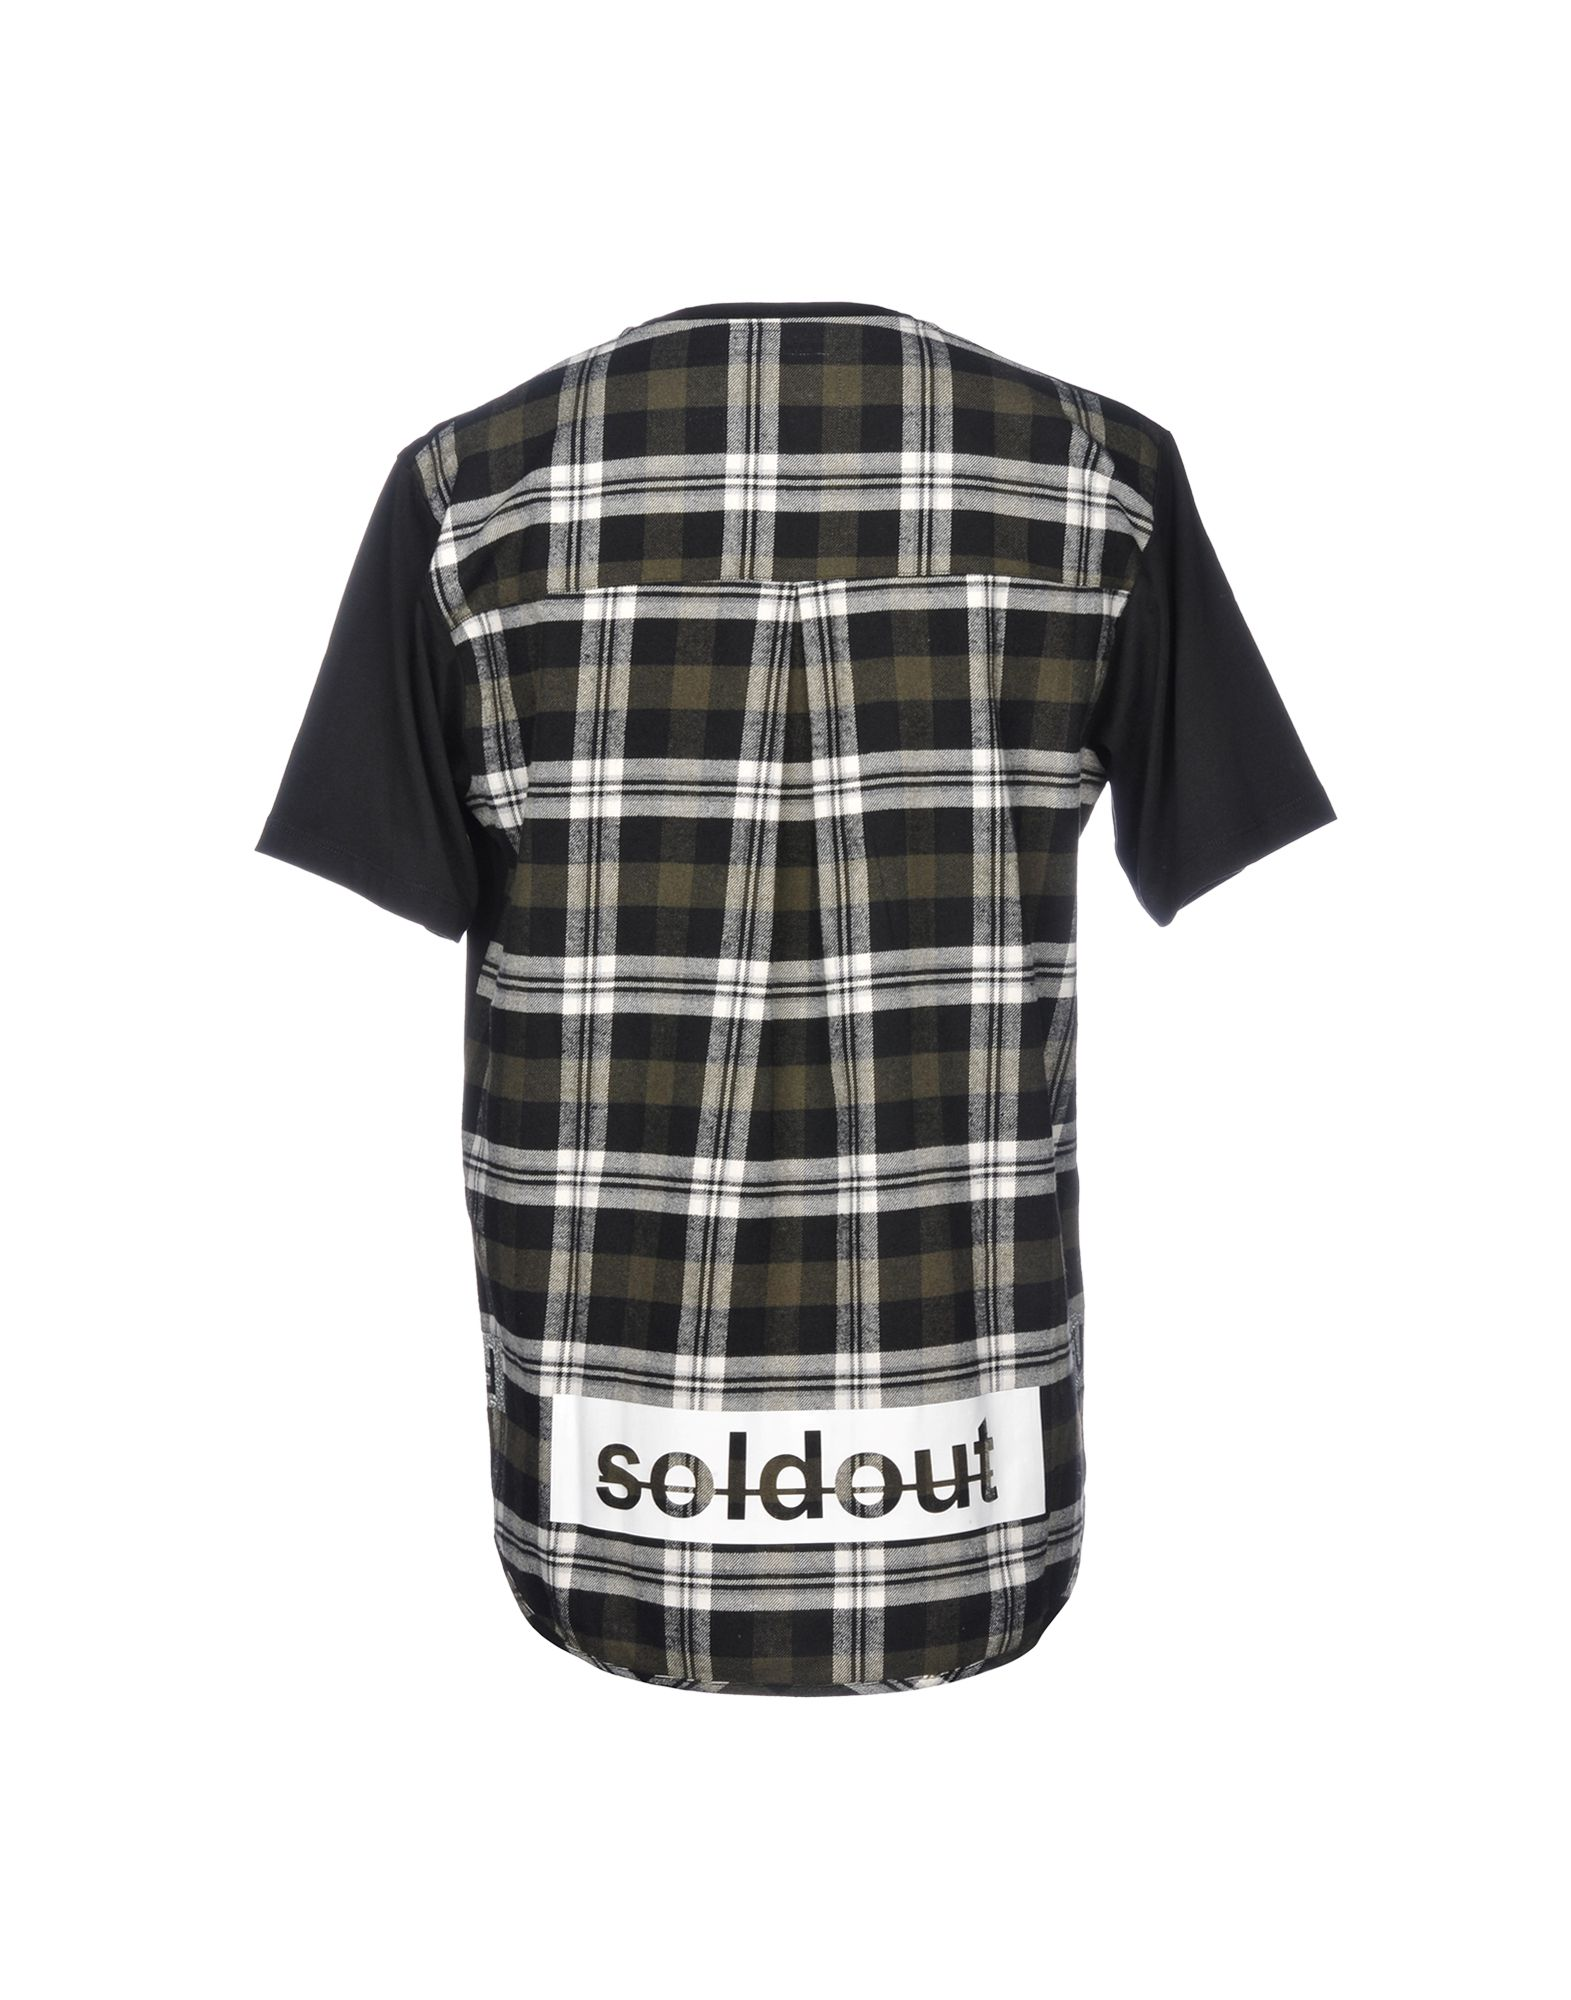 T-Shirt Sold Out Uomo Uomo Uomo - 12010605QB 92bd29